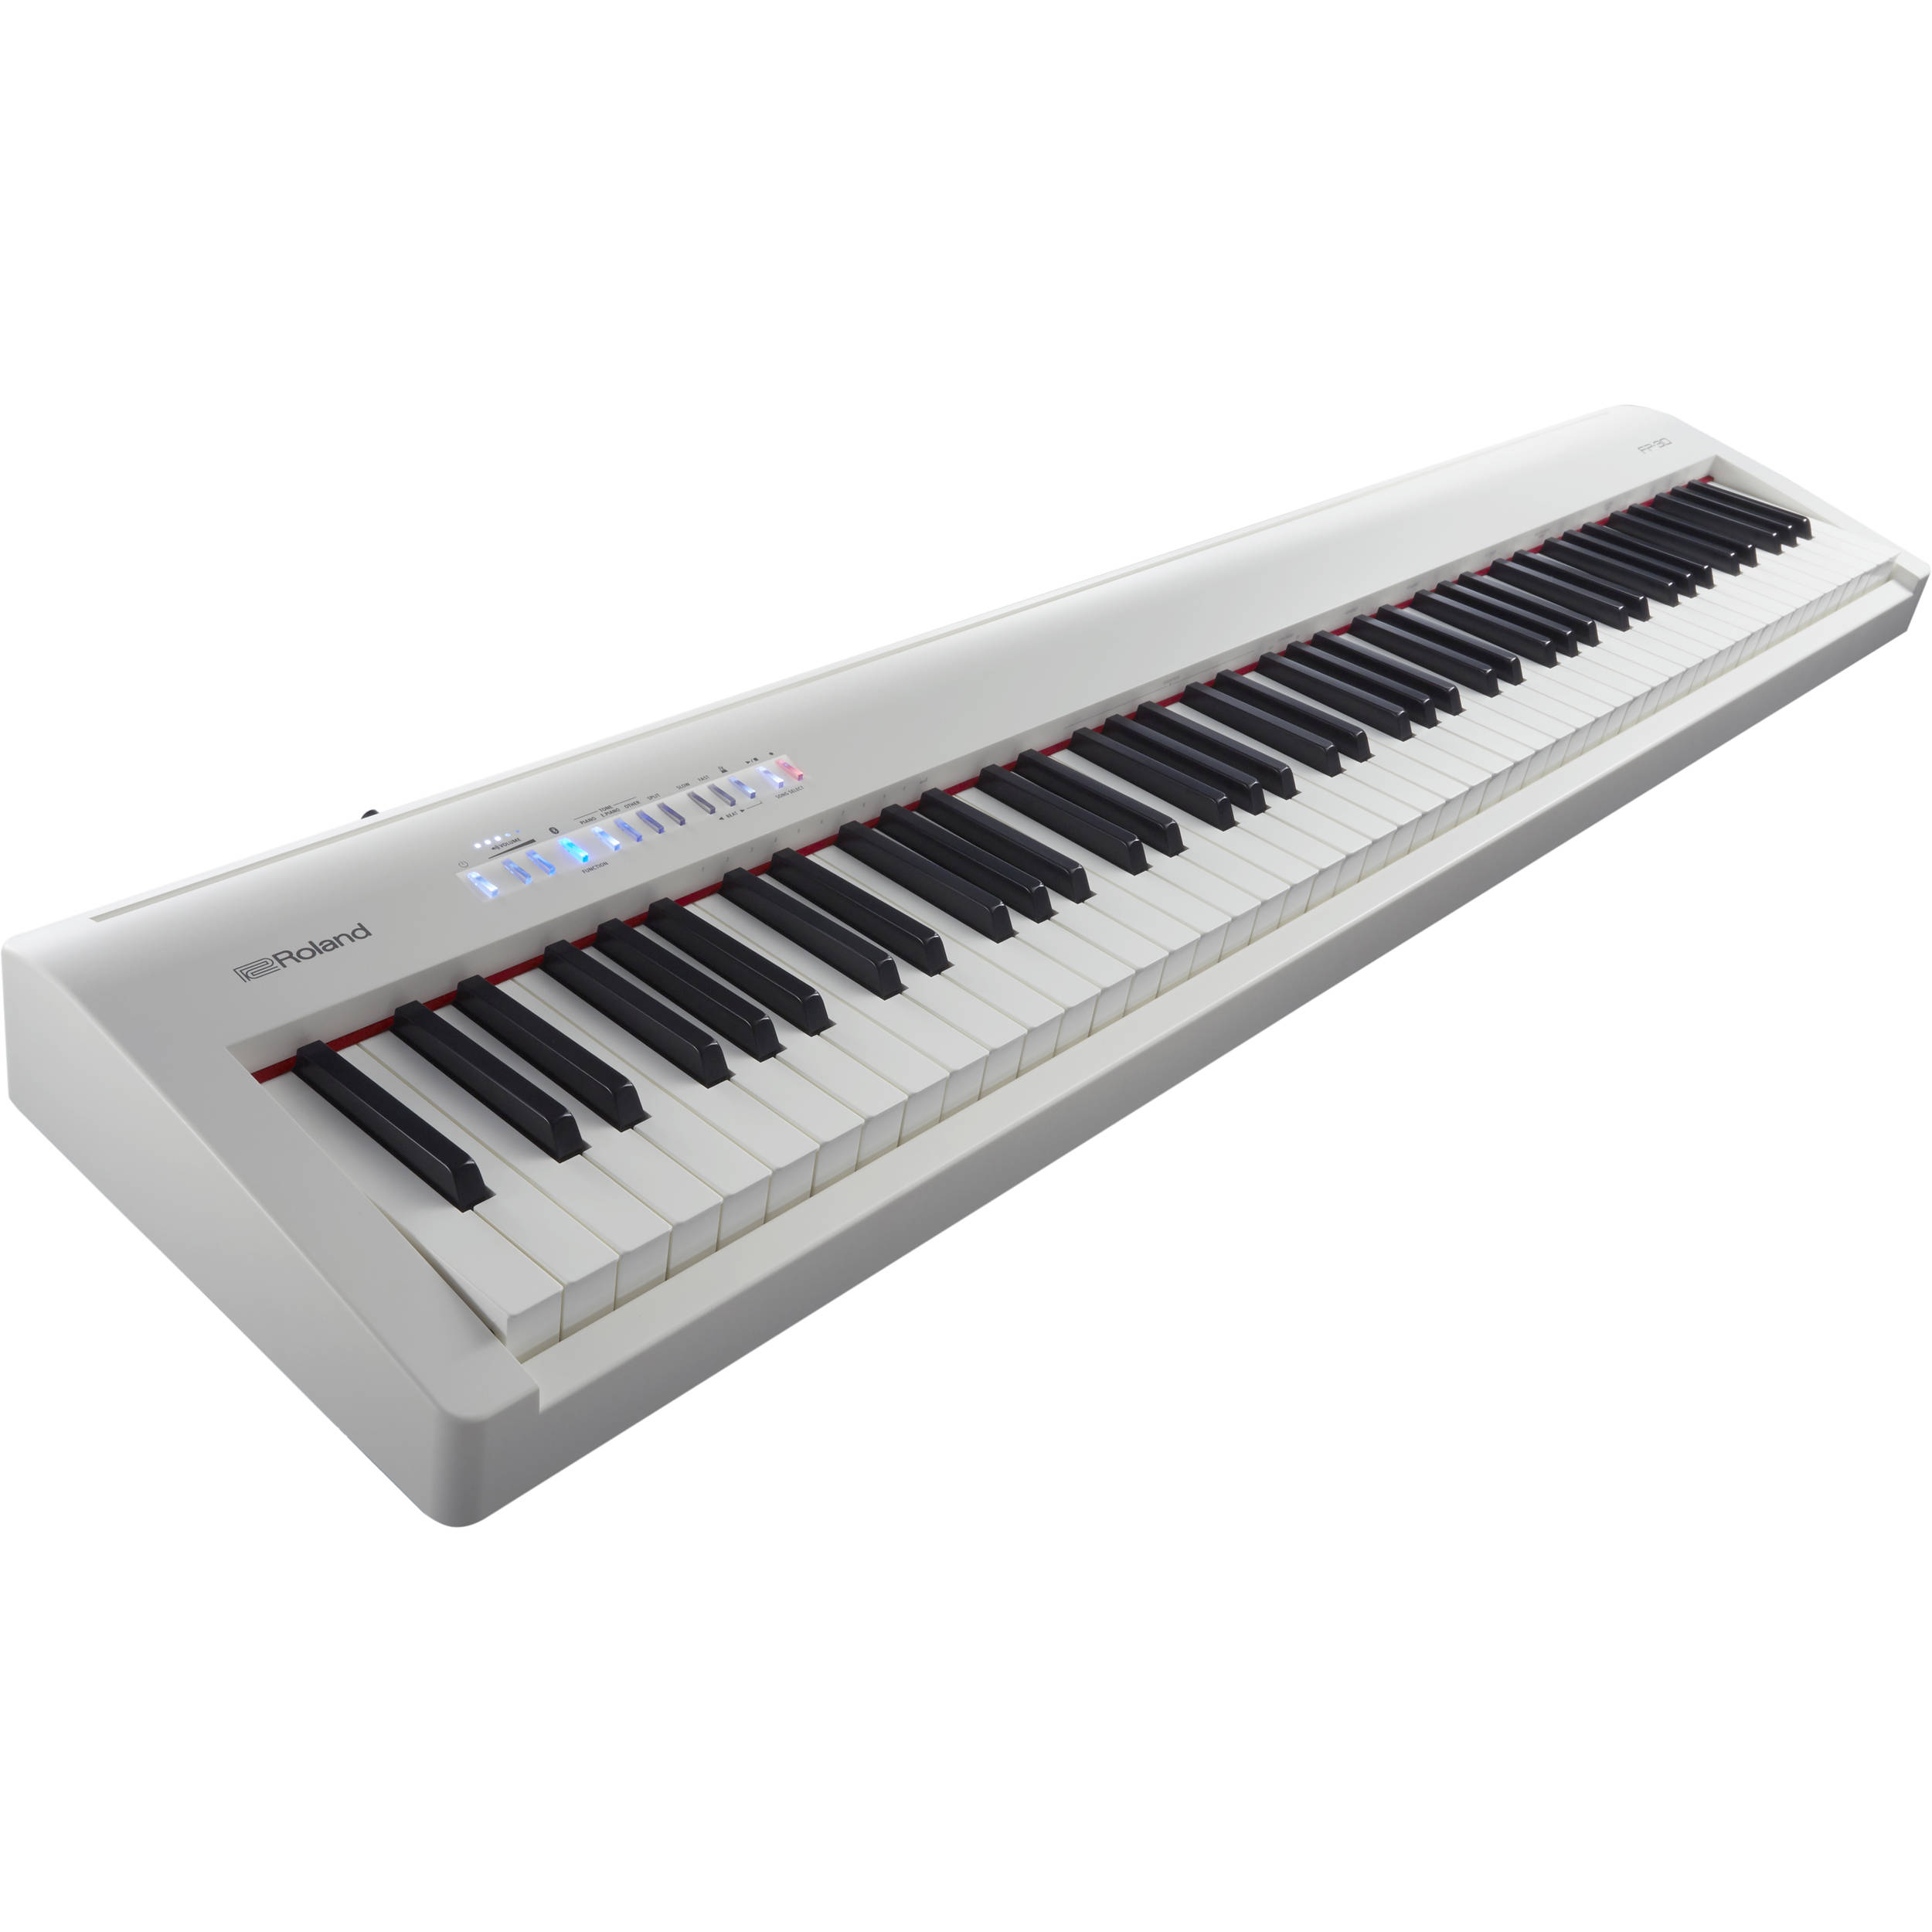 Roland FP-30 - Digital Piano (White) FP-30-WH B&H Photo Video